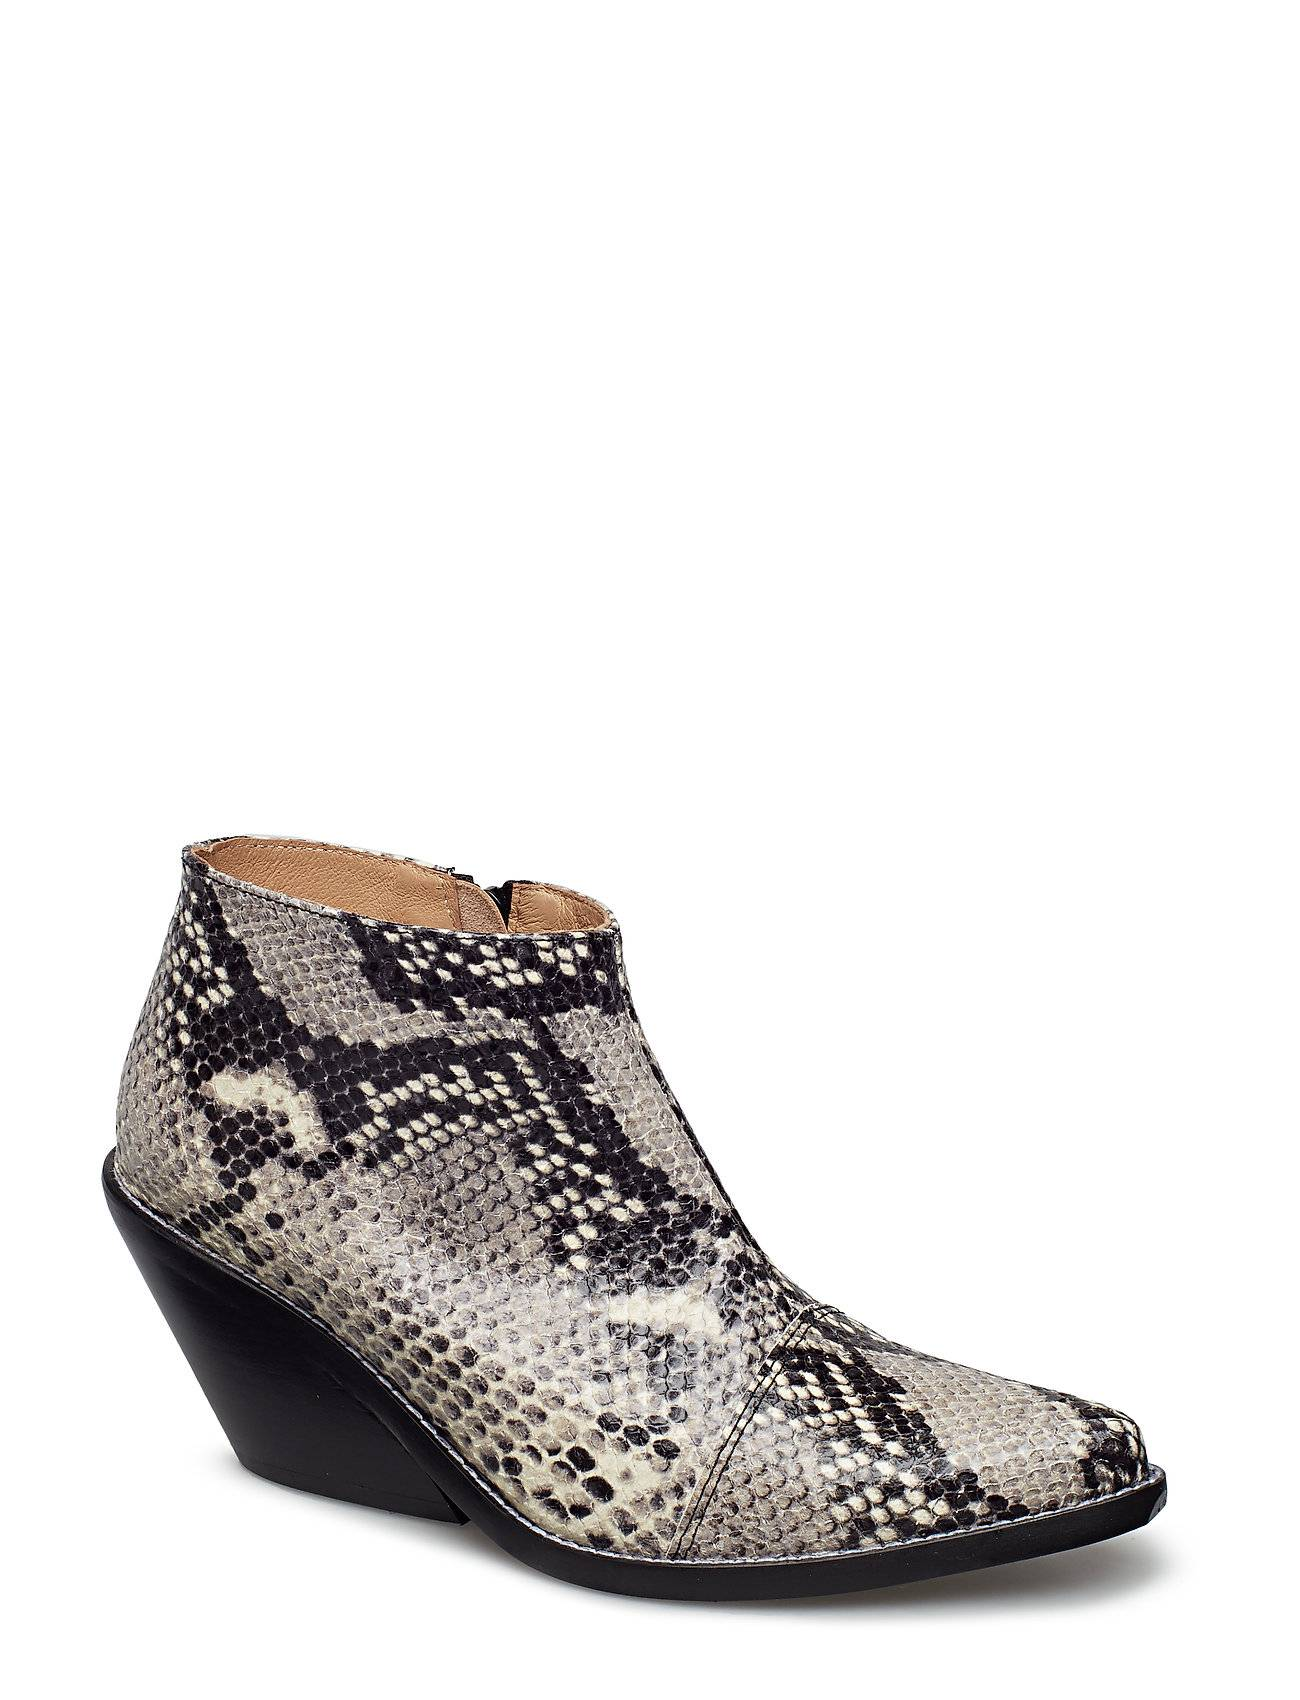 Henry Kole Ava Snake Shoes Boots Ankle Boots Ankle Boots With Heel Musta Henry Kole